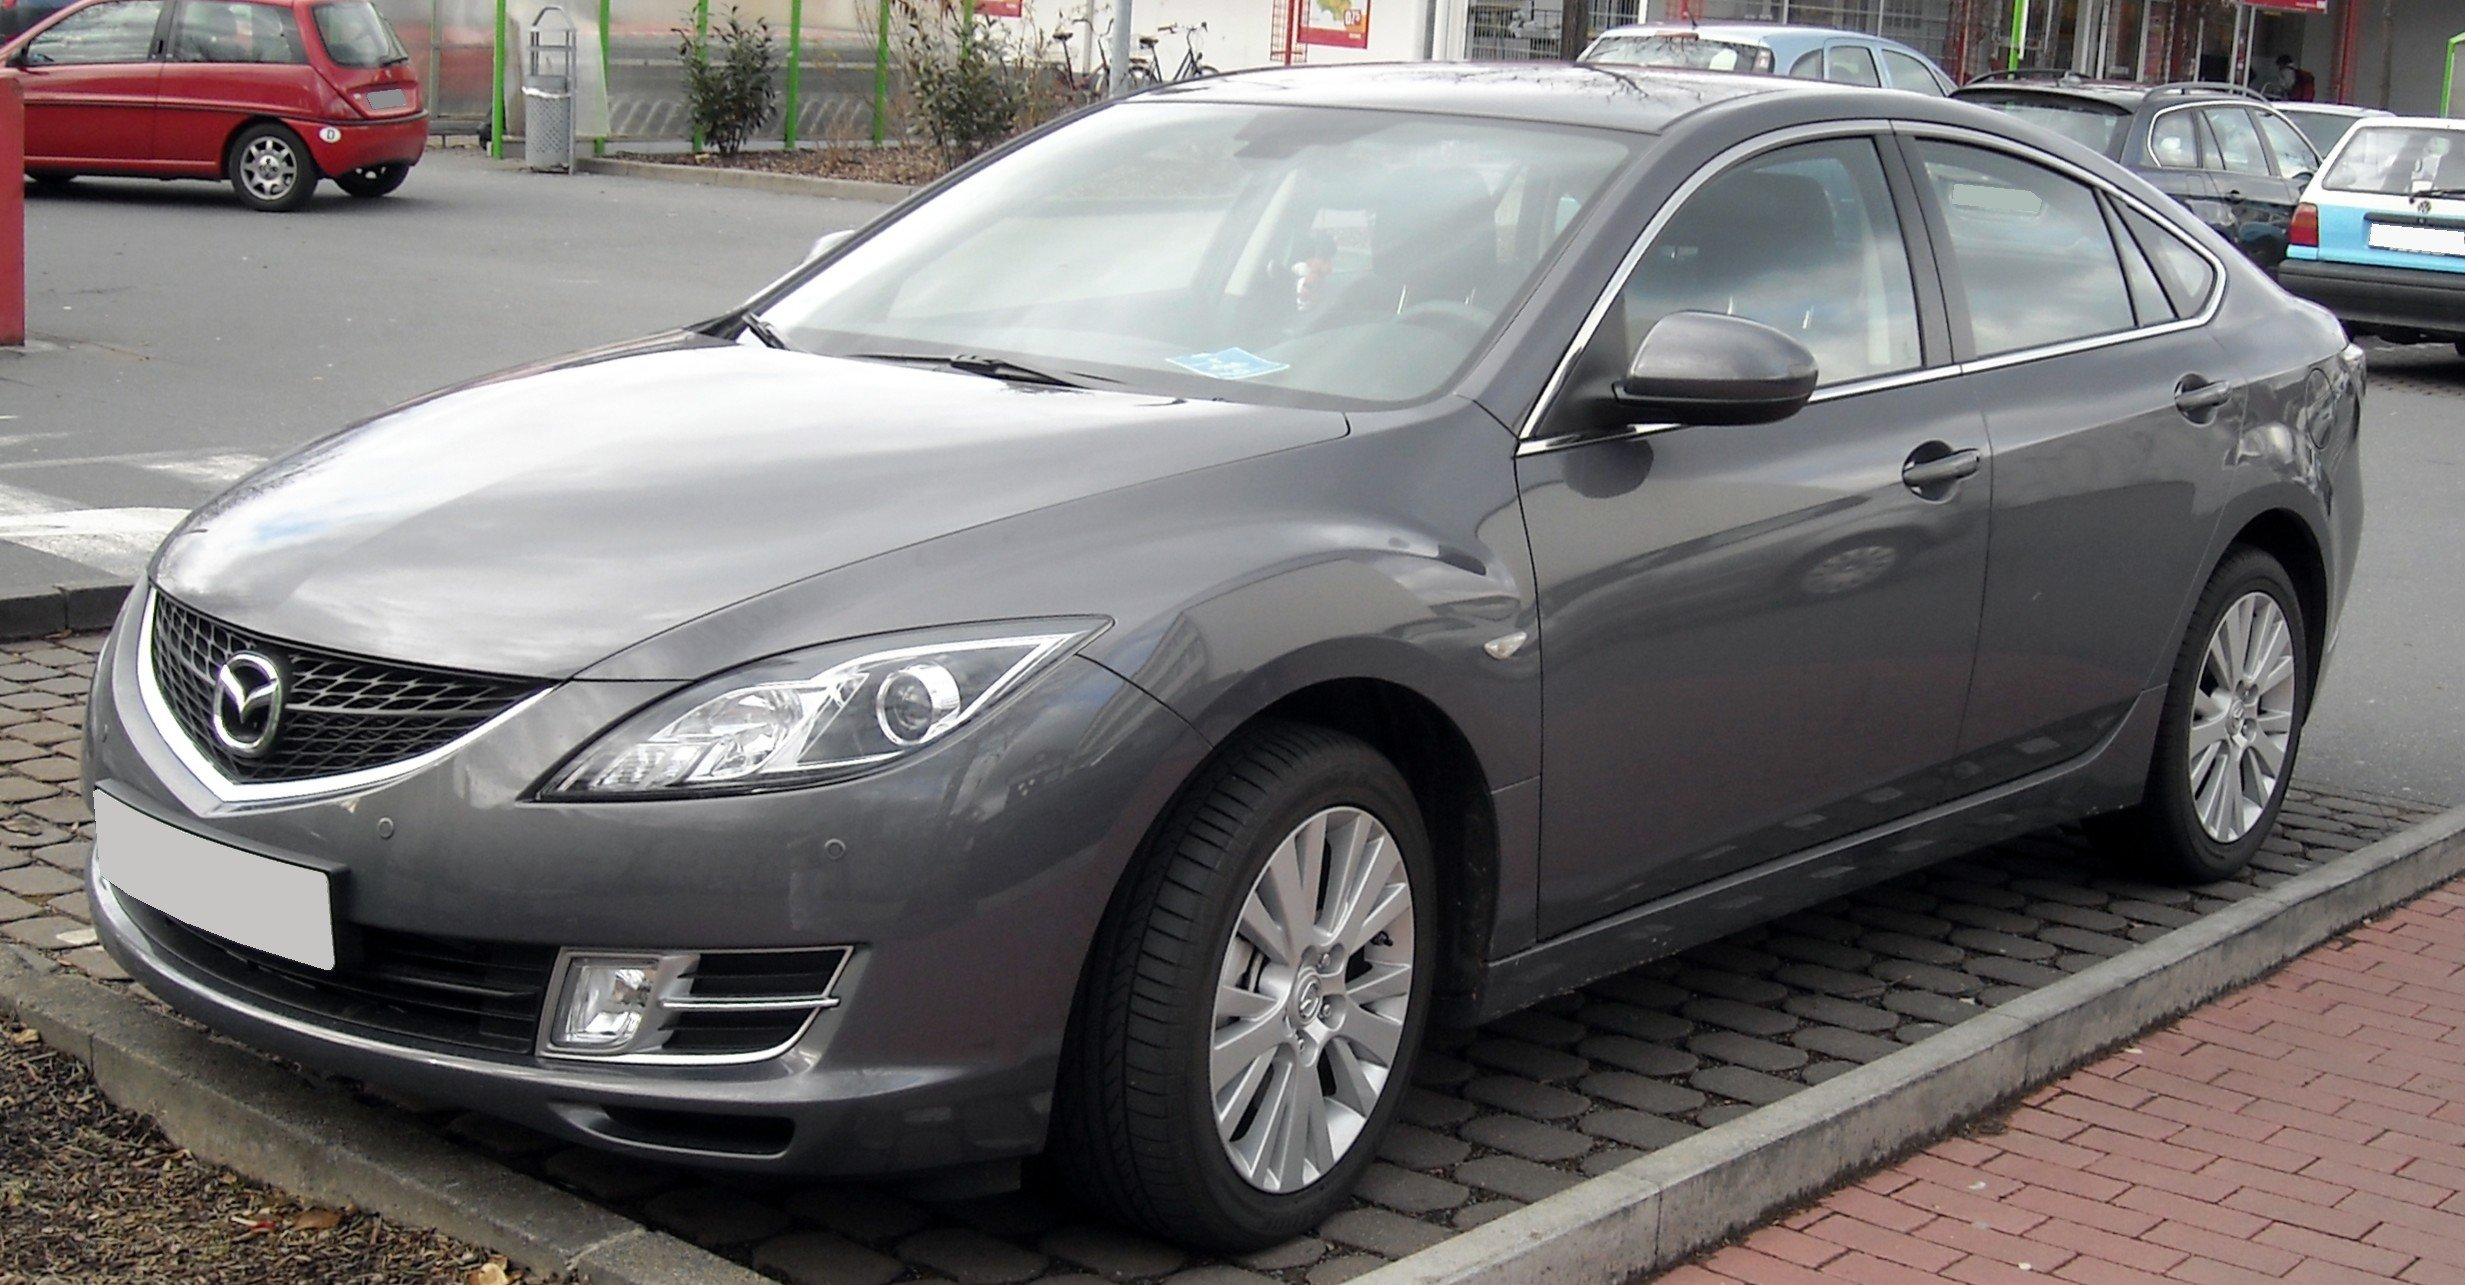 2004 Mazda Mazda 6 Sport Wagon Pictures Information And